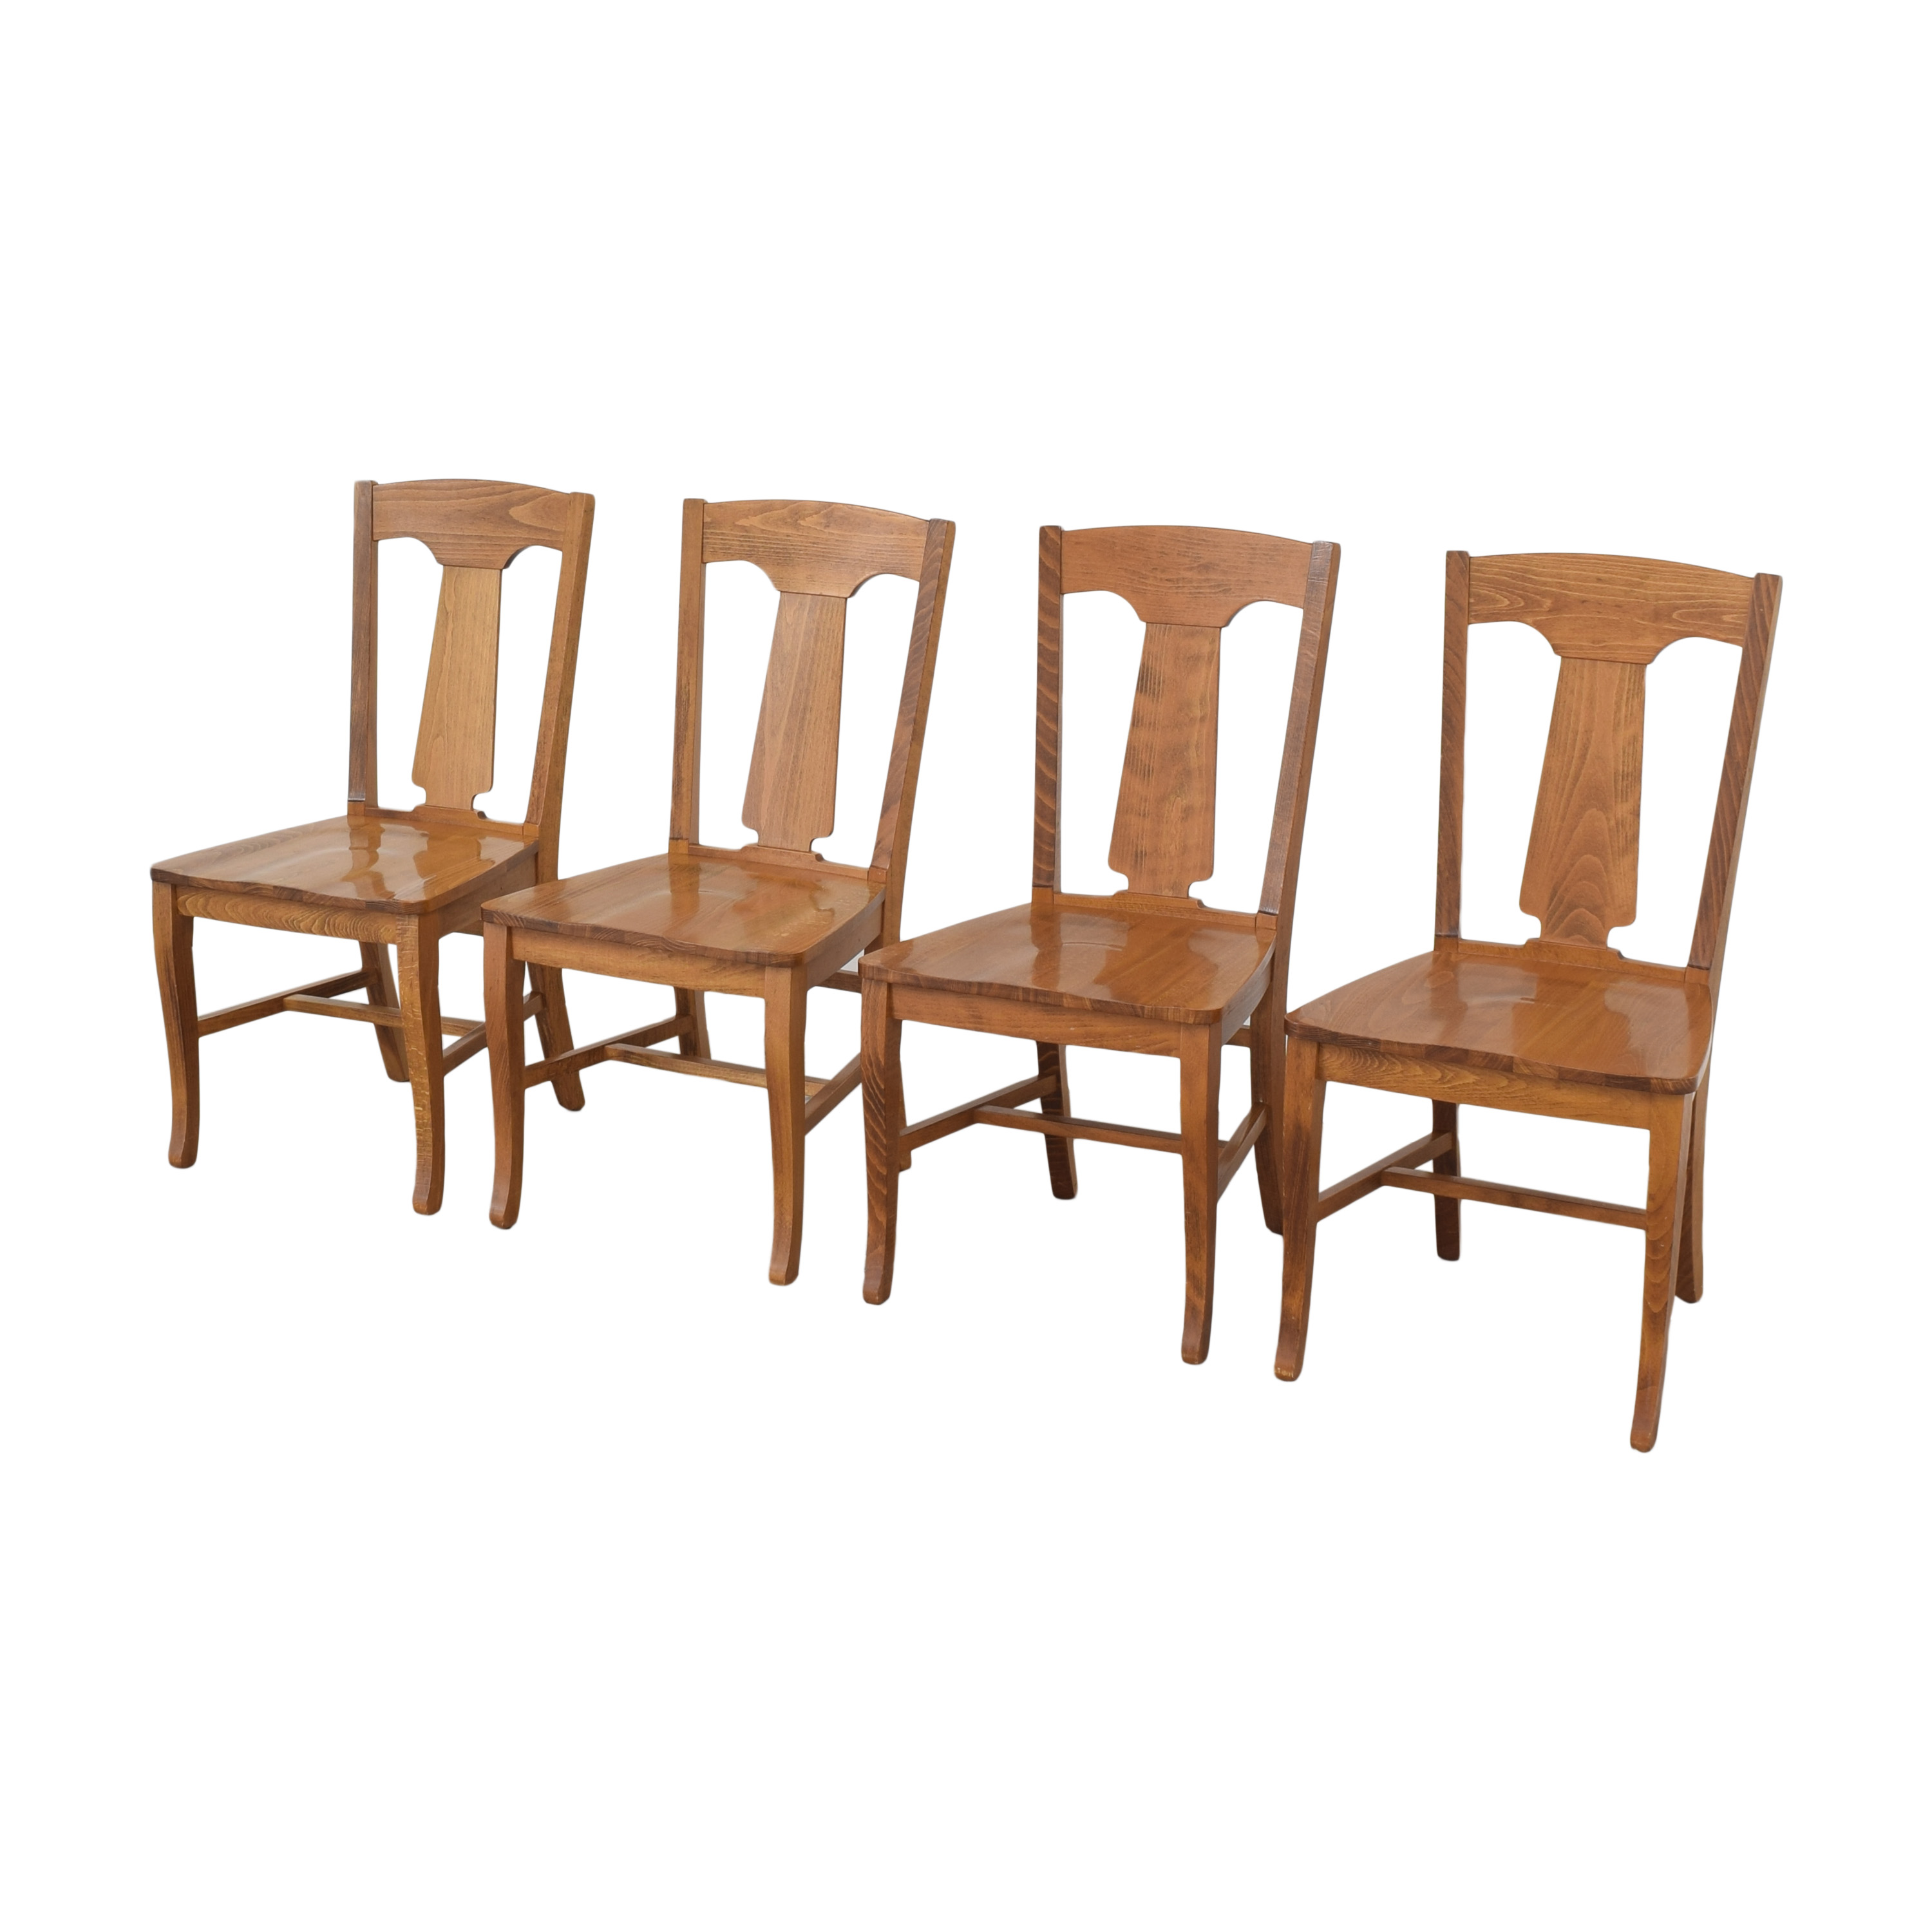 Pottery Barn Pottery Barn Loren Dining Chairs price